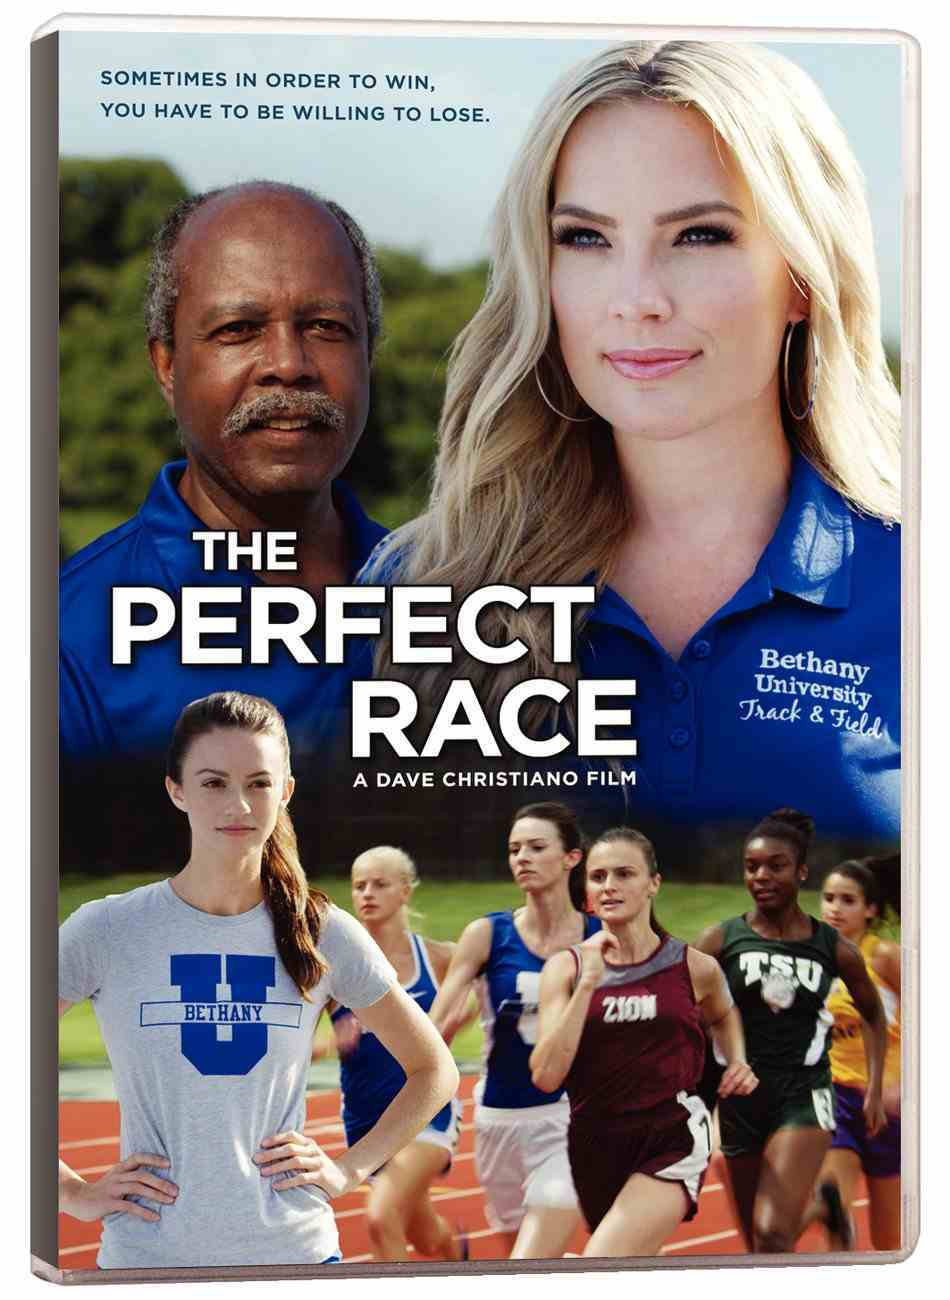 The Perfect Race DVD